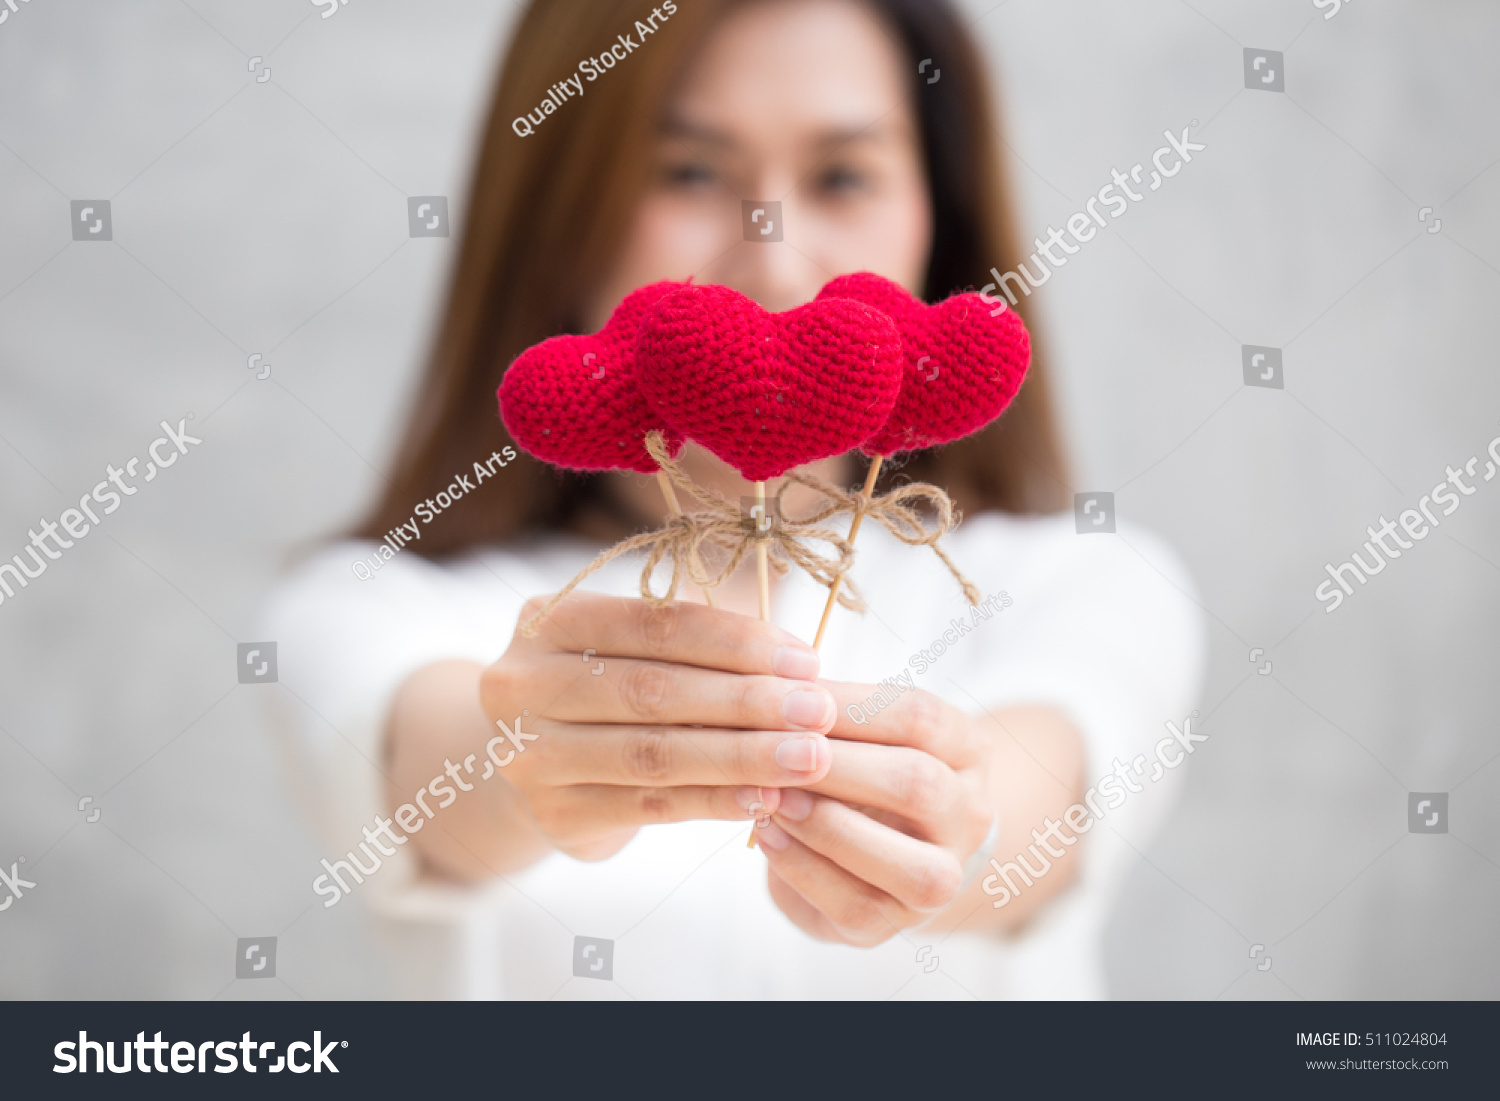 Giving Love Gift Asian Woman Hand Stock Photo 511024804